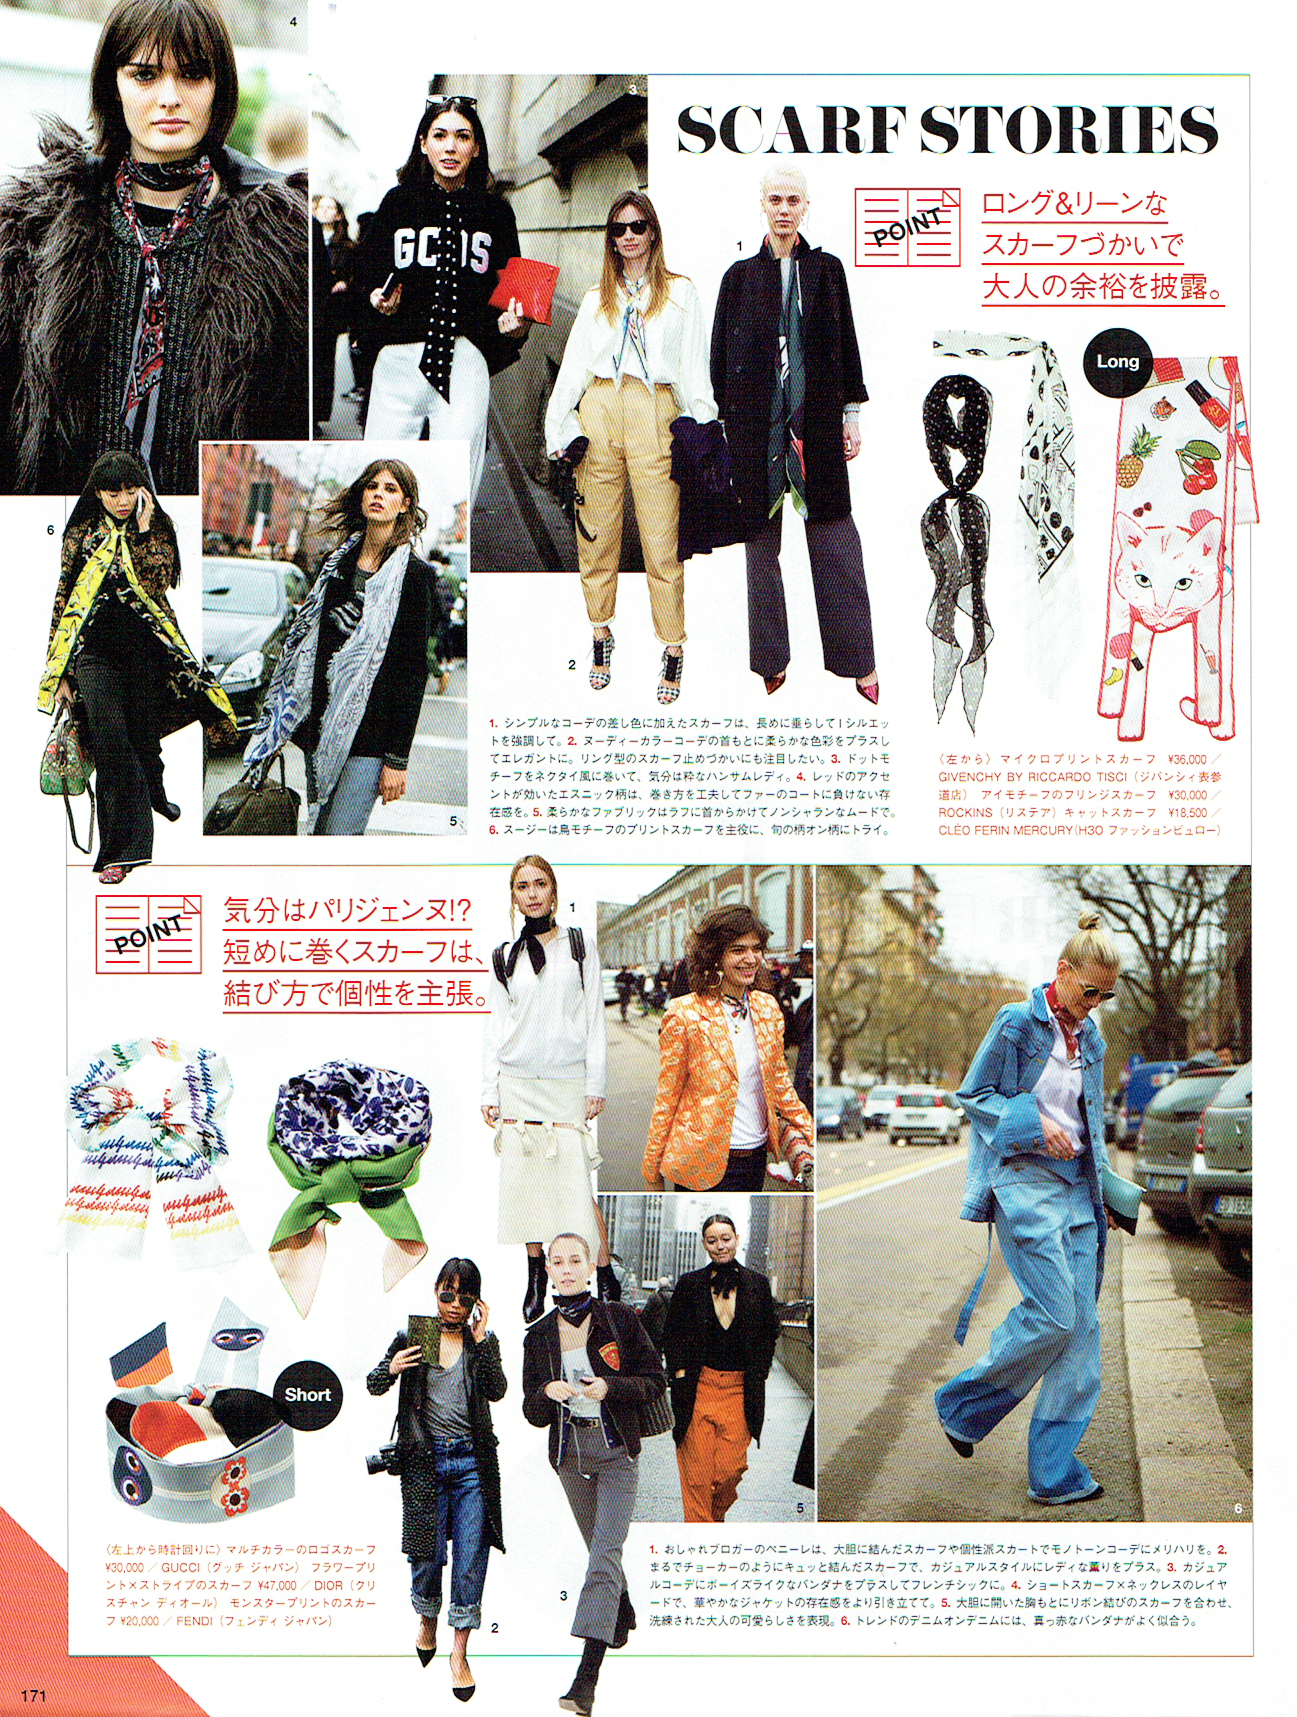 SS16  Small Cat Covered in Stickers Long Silk Scarf  as featured in Vogue Japan's Scarf Stories.